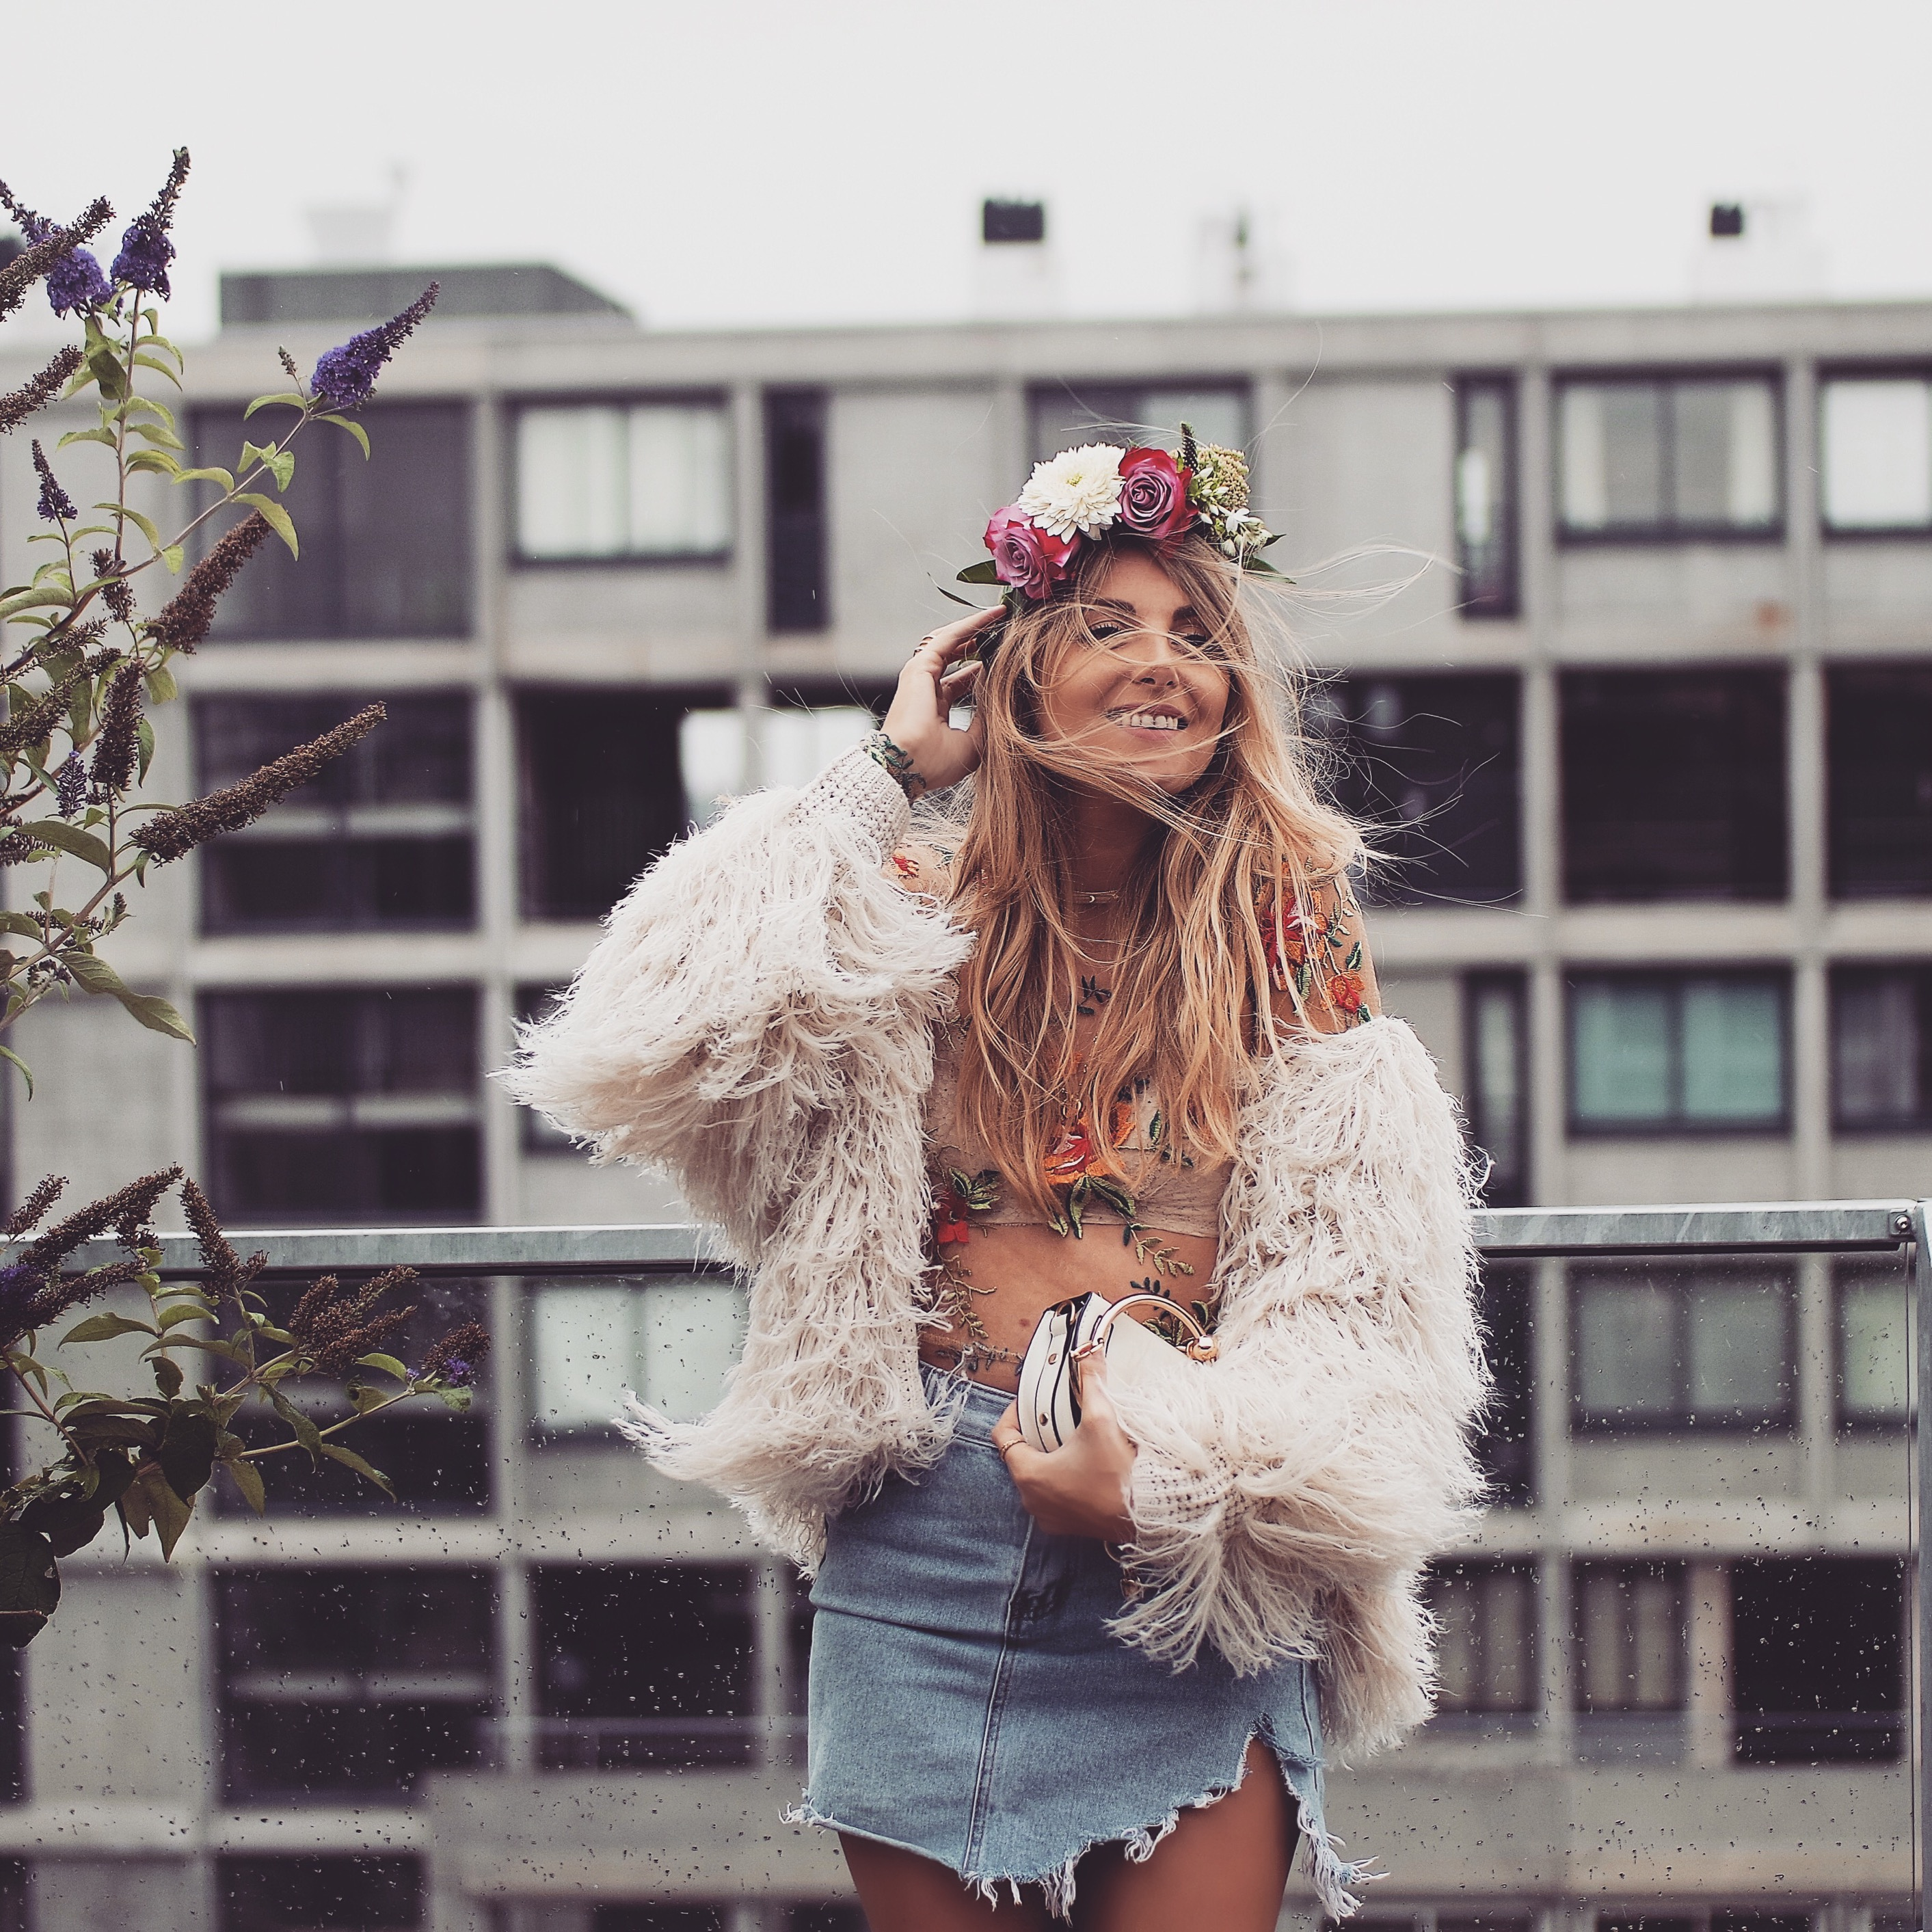 48 Hours In Amsterdam Flower Crown Love Style Mindfulness